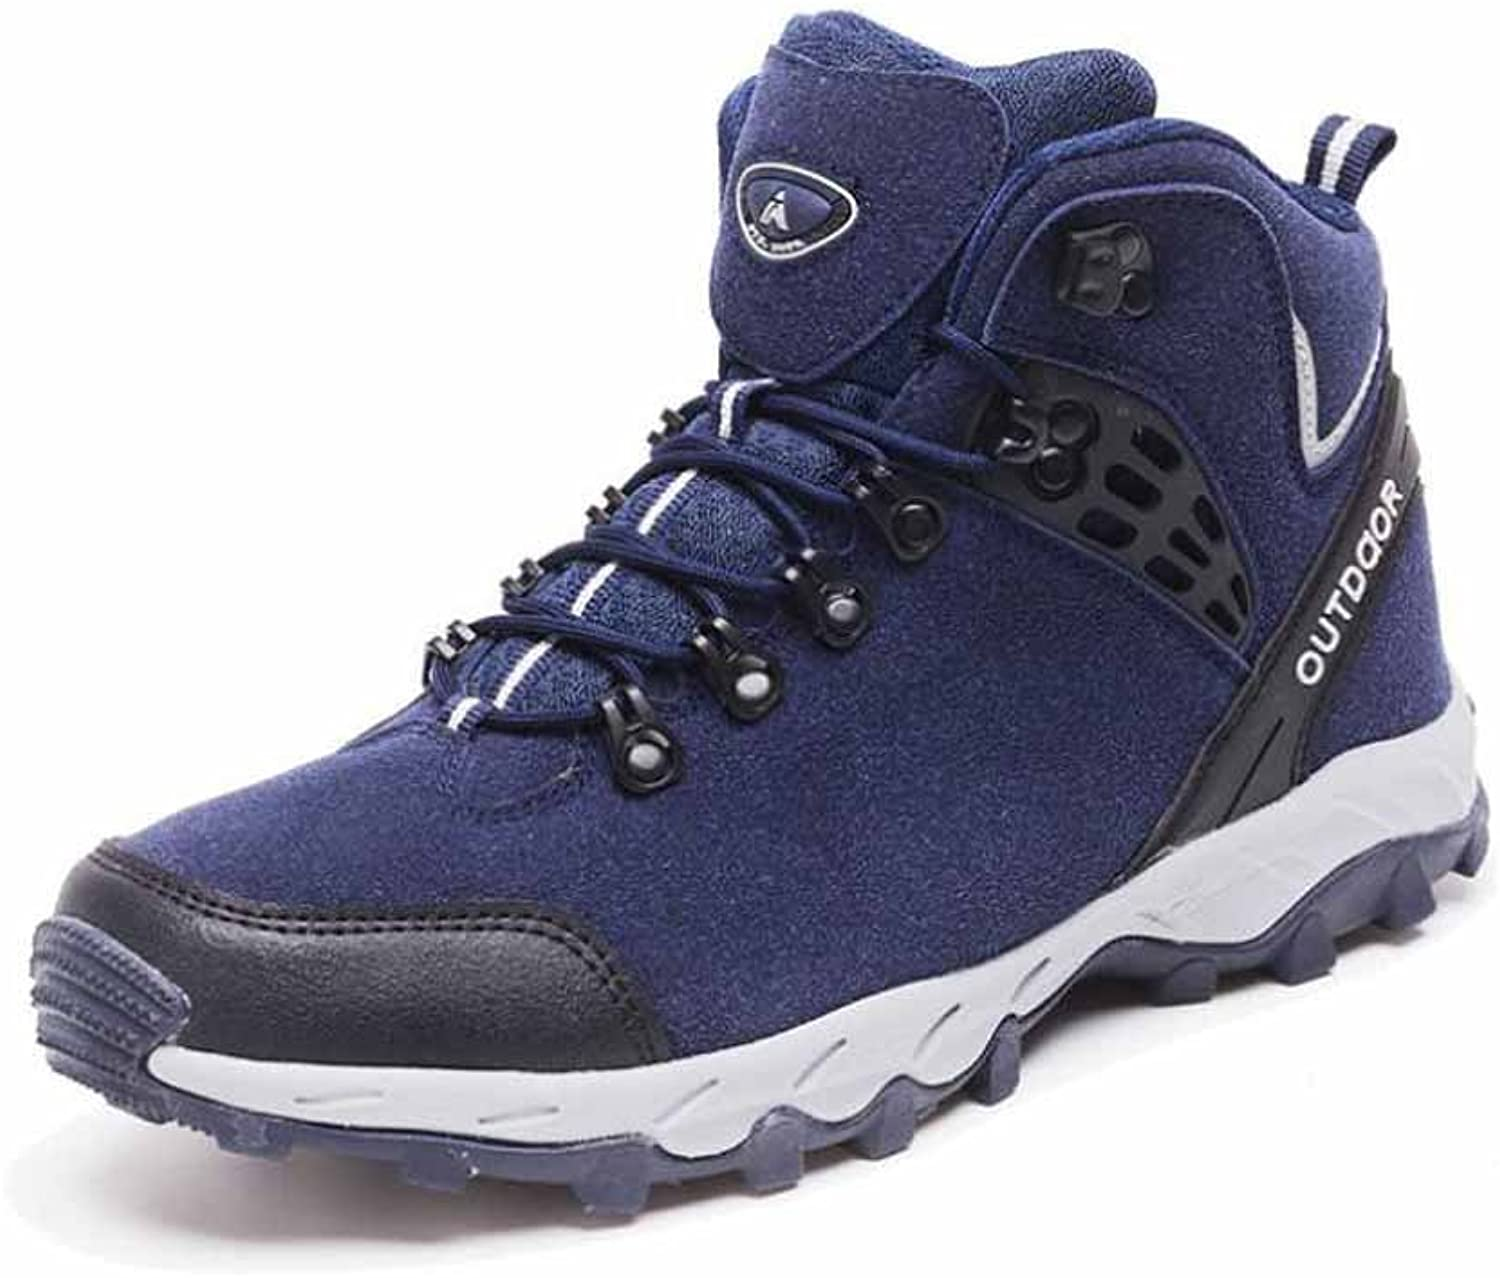 Men Outdoor Hiking shoes Autumn Winter Fur Lined Warm High Top Travel shoes Large Size Cotton shoes